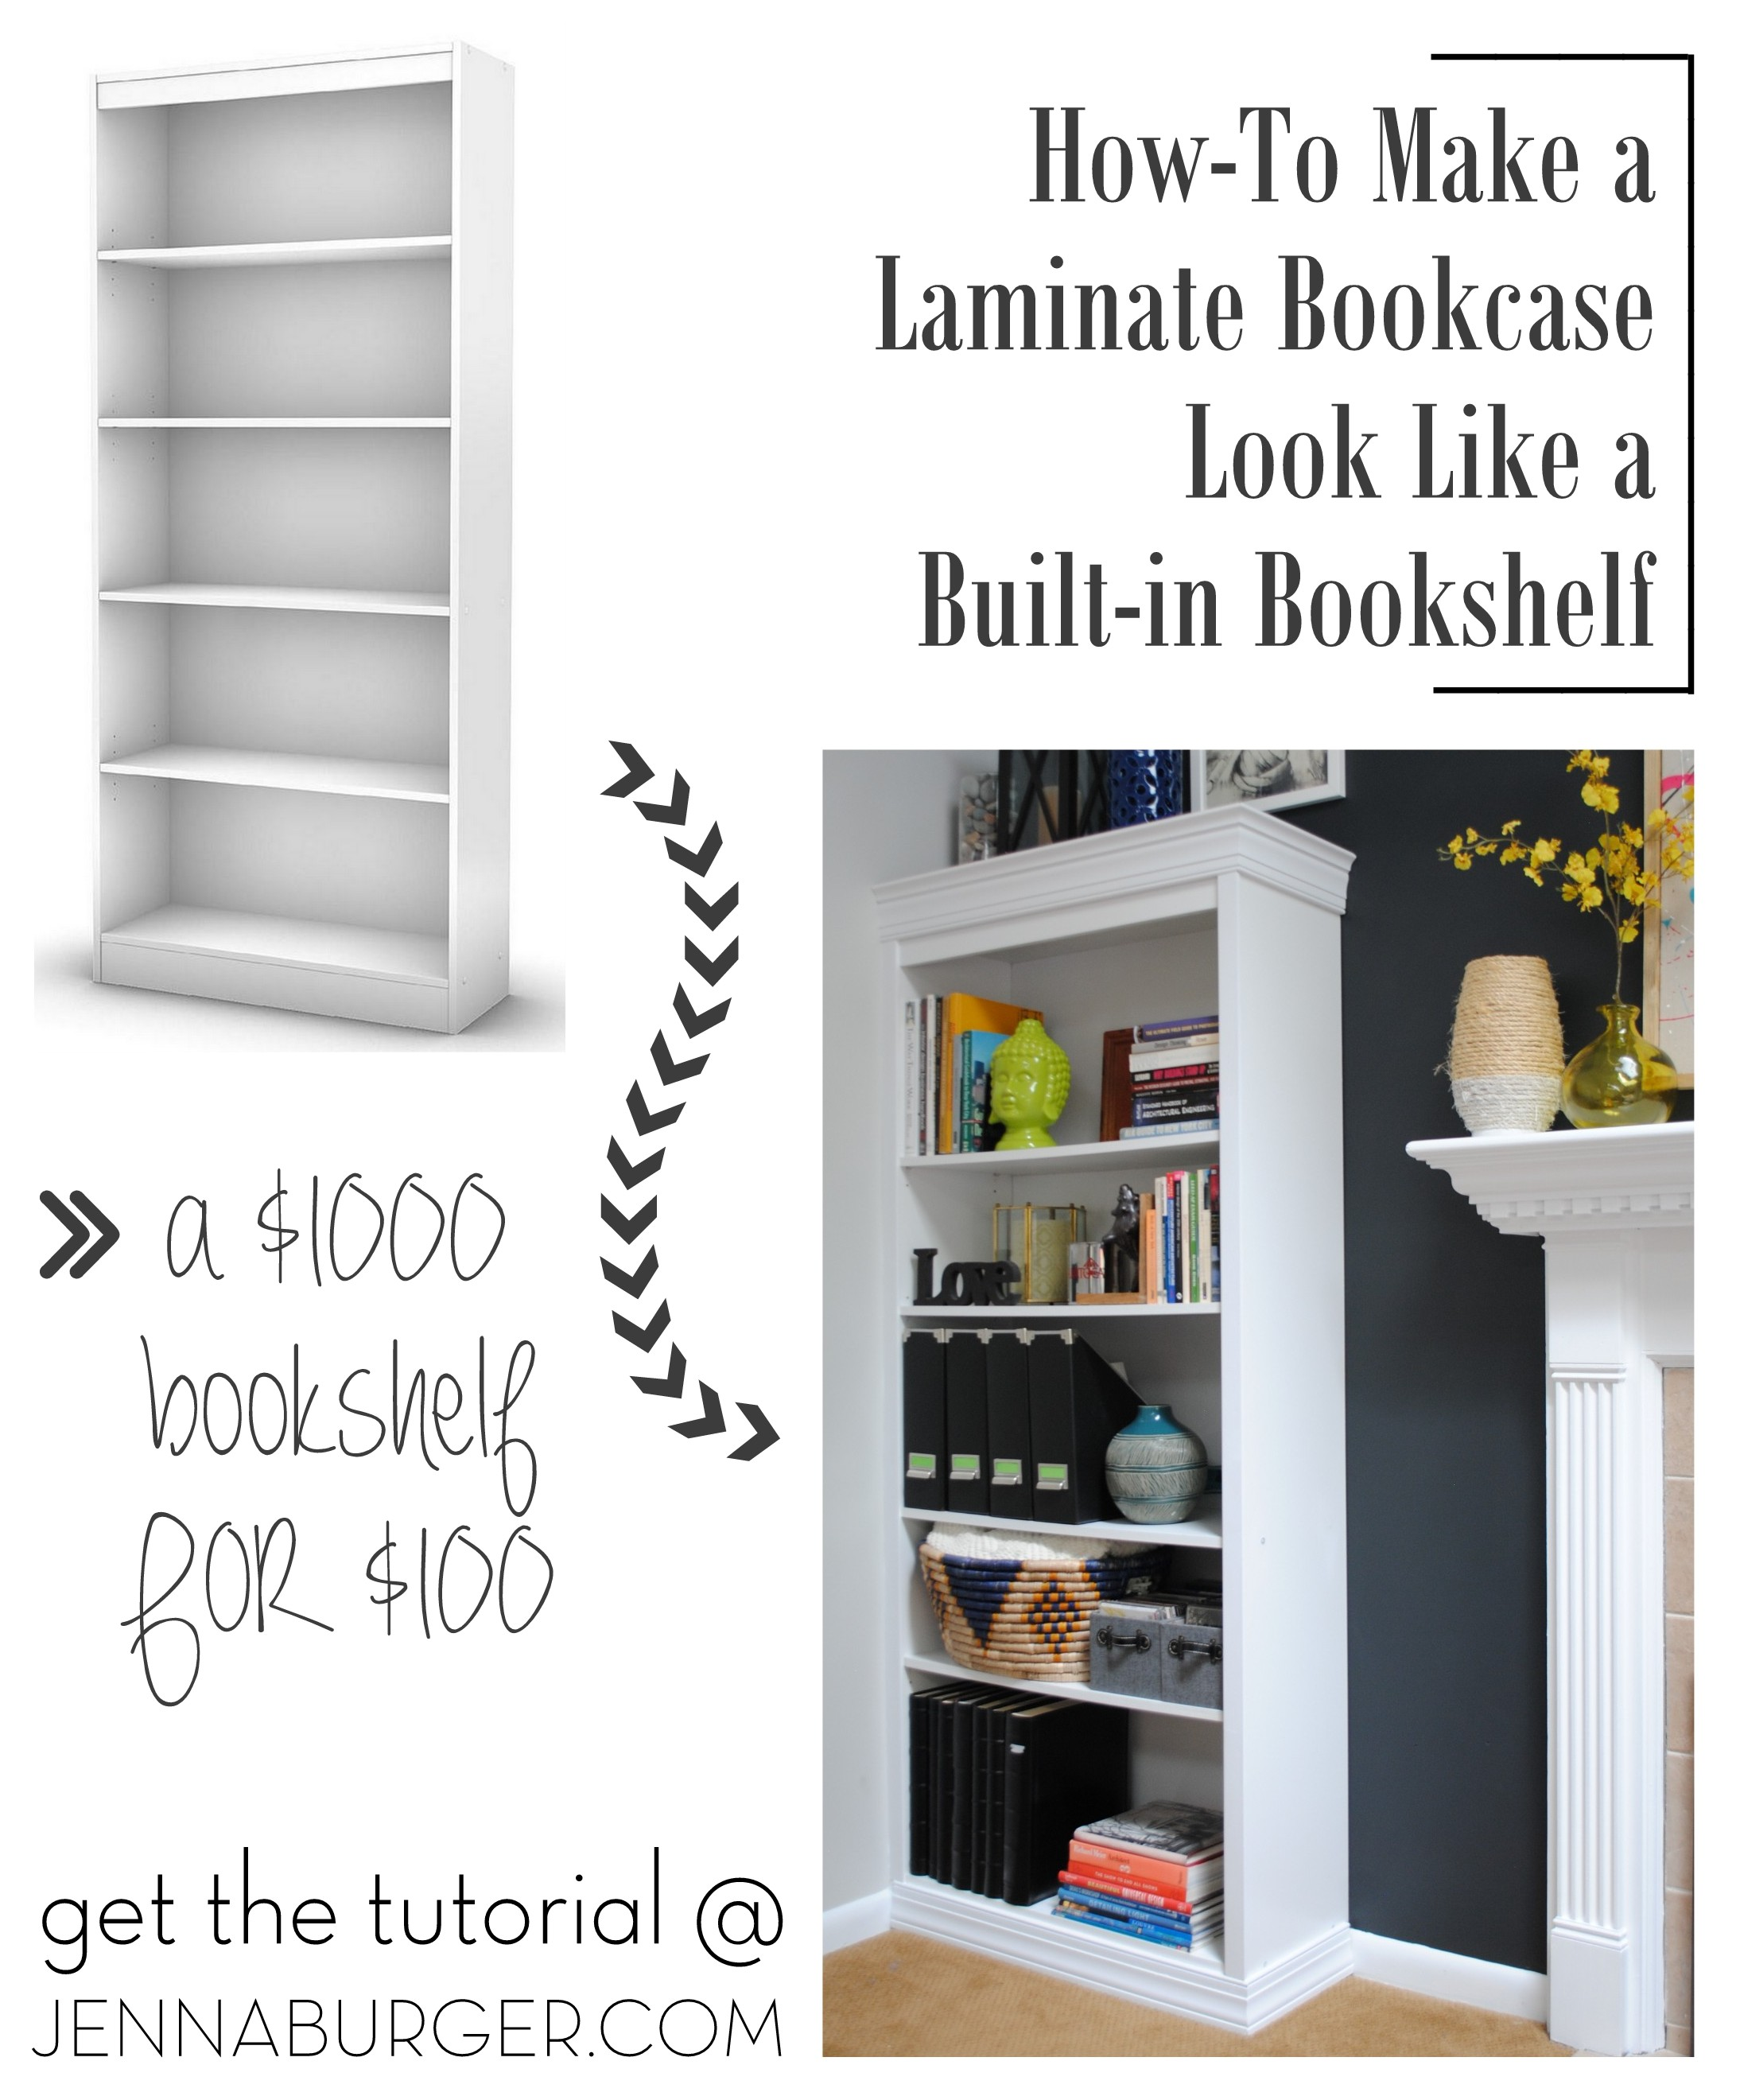 designs bookcases simple to woodworking a c shelves l how ideas ceiling build custom bookcase inc floor diy